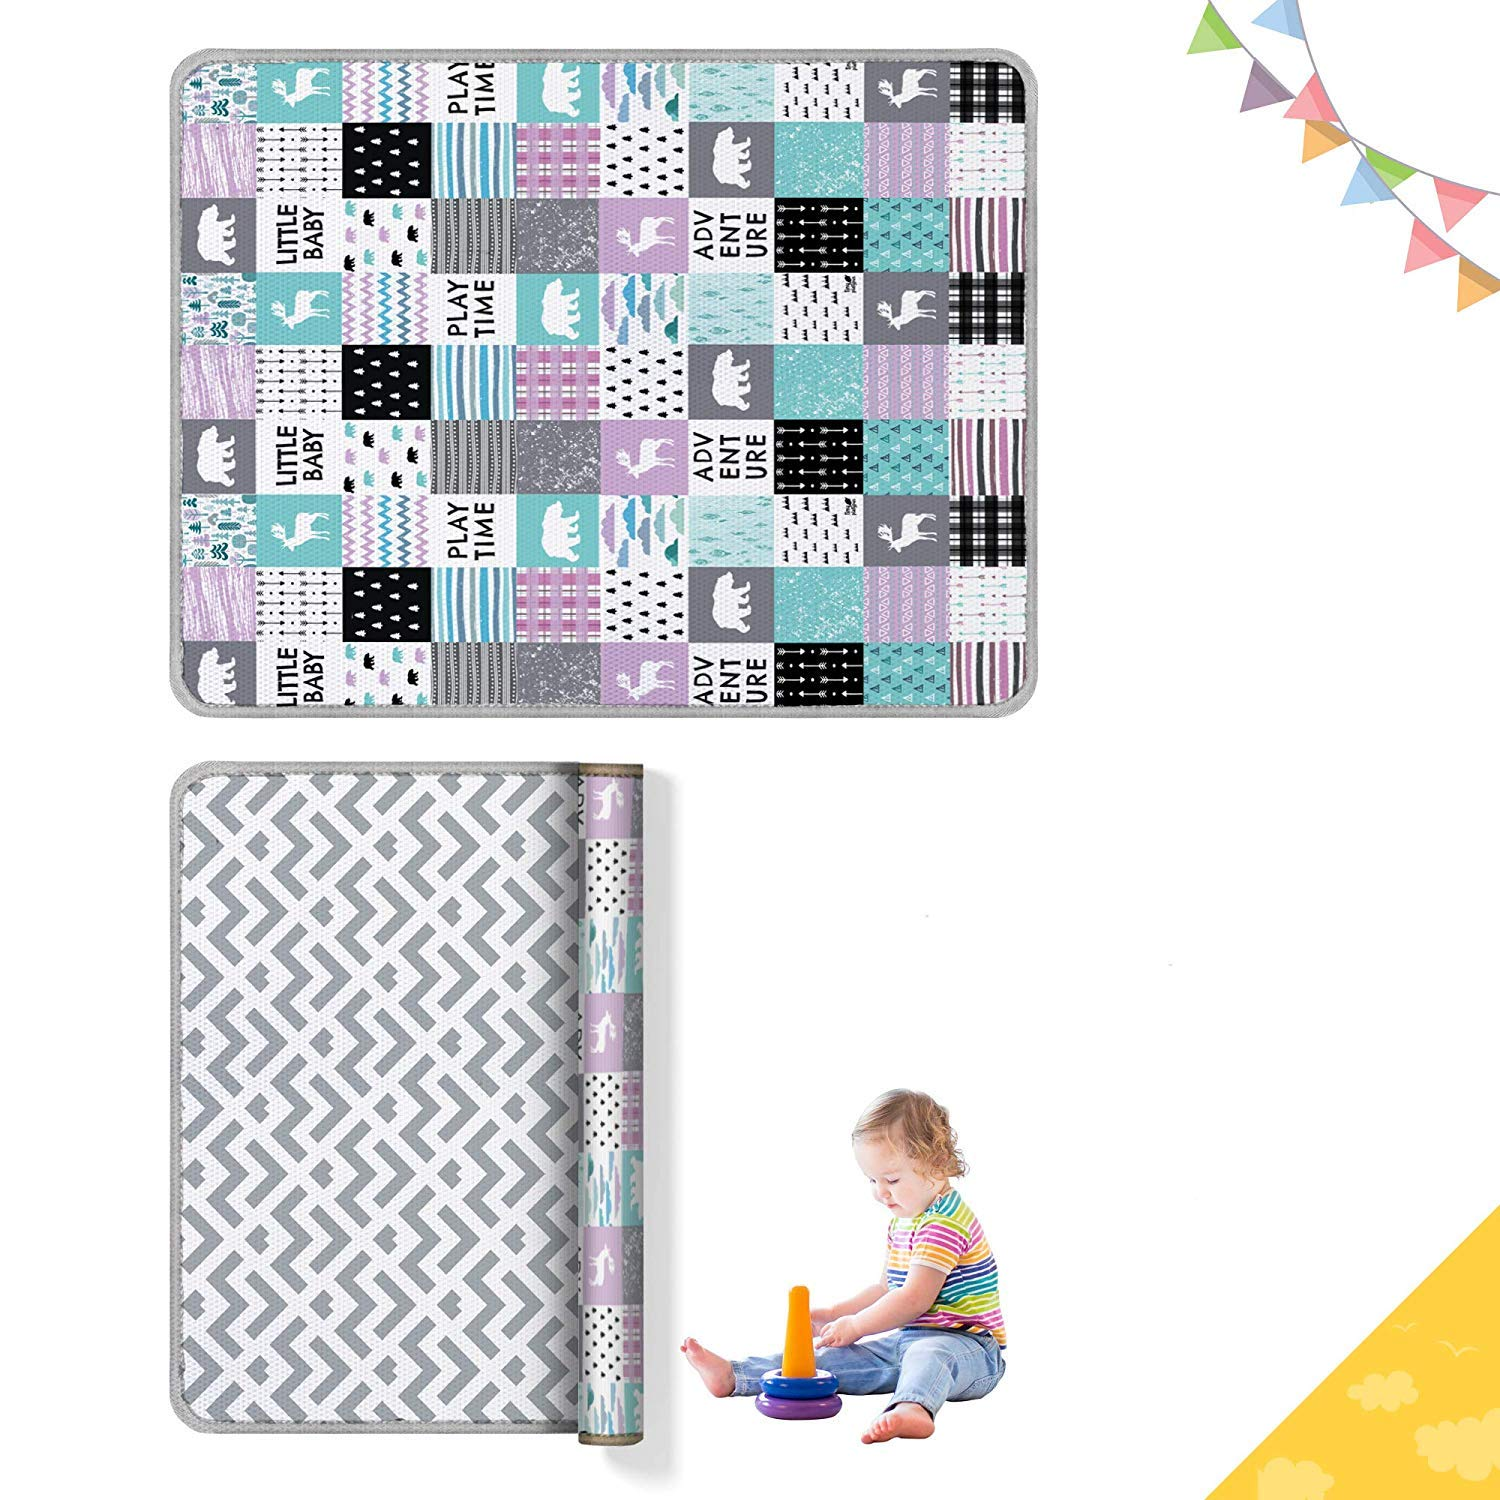 Baby Play Mat 79 x 71 x 0.6 Inches Waterproof and Anti-Slippery Activity Rug Double Sided and Reversible Playmat Comes Rolled in a Huge Box Playful for Tummy Time